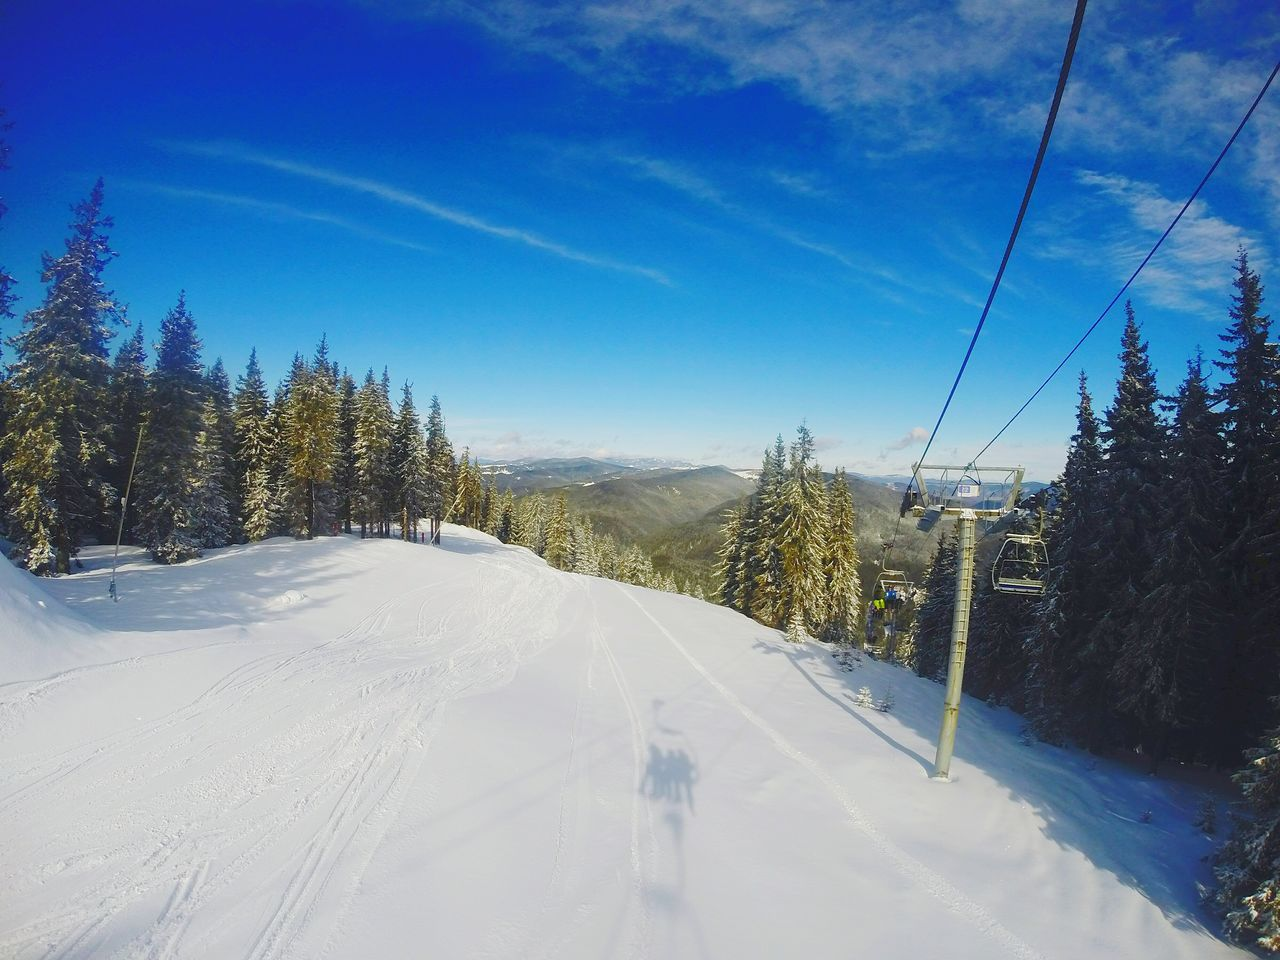 Landscape From My Point Of View Skilift Snowy Trees Snow Trees Ski Slope Slopes Ski Winter Skiing Bulgaria Its Cold Outside Gettyimages Cold Life Through A Lens Photography Horizon Mountain View Mountains Snowy Skyporn Clouds And Sky Taking Photos Landscapes With WhiteWall